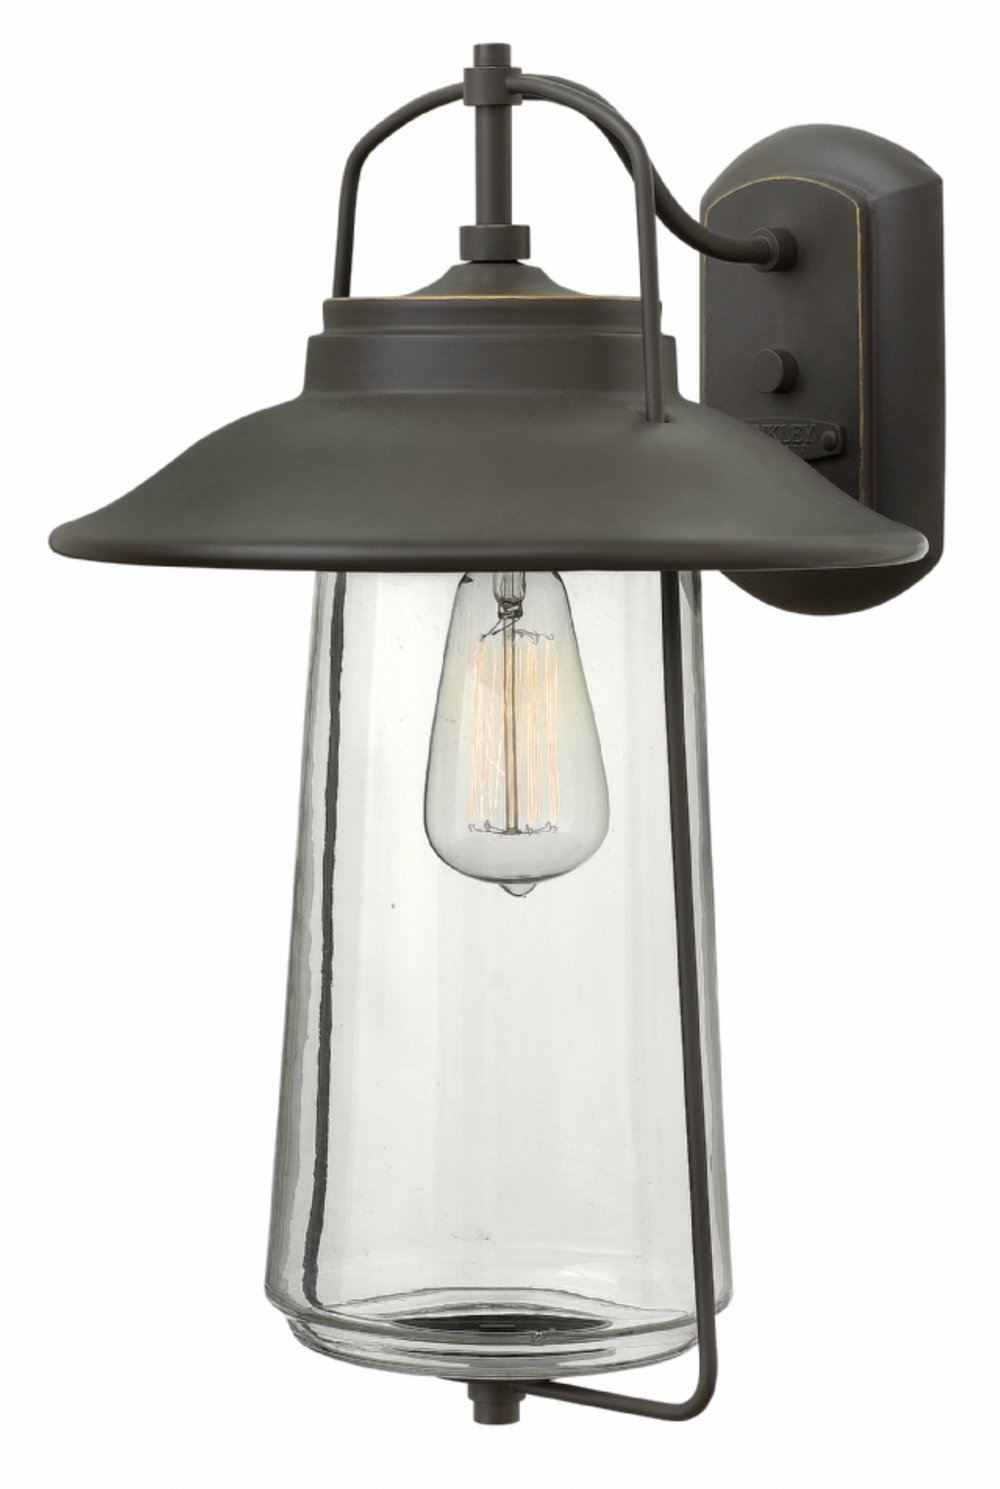 H - EXTERIOR LIGHT - Hinkley - EXTERIOR LIGHT - Belden Place 2865 OZ.jpg